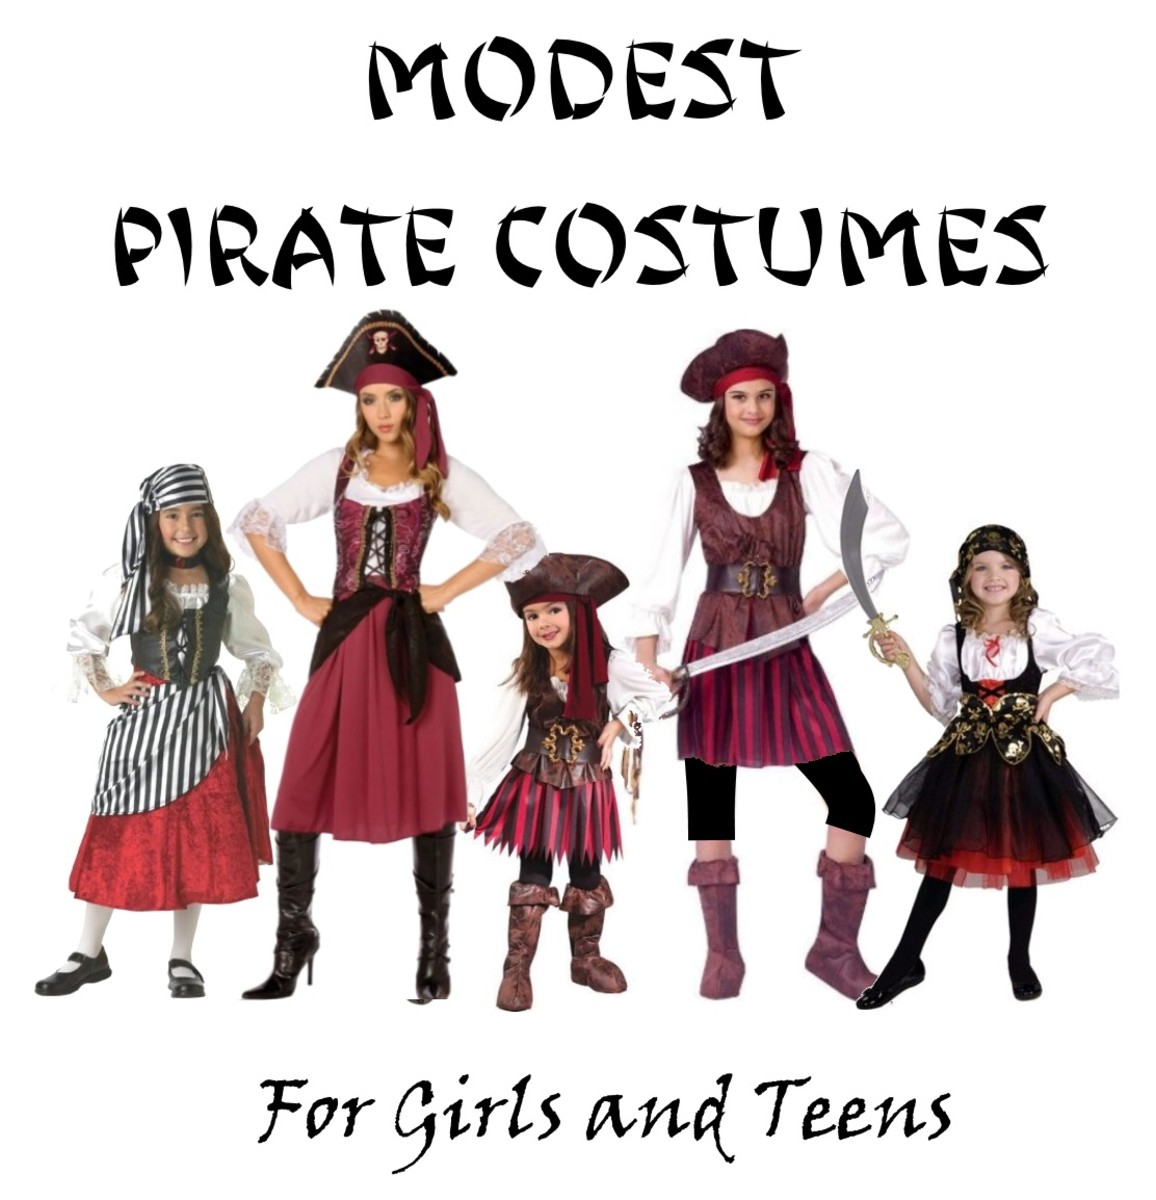 click here for more pirate costumes for girls and teens - Teenage Girl Pirate Halloween Costumes